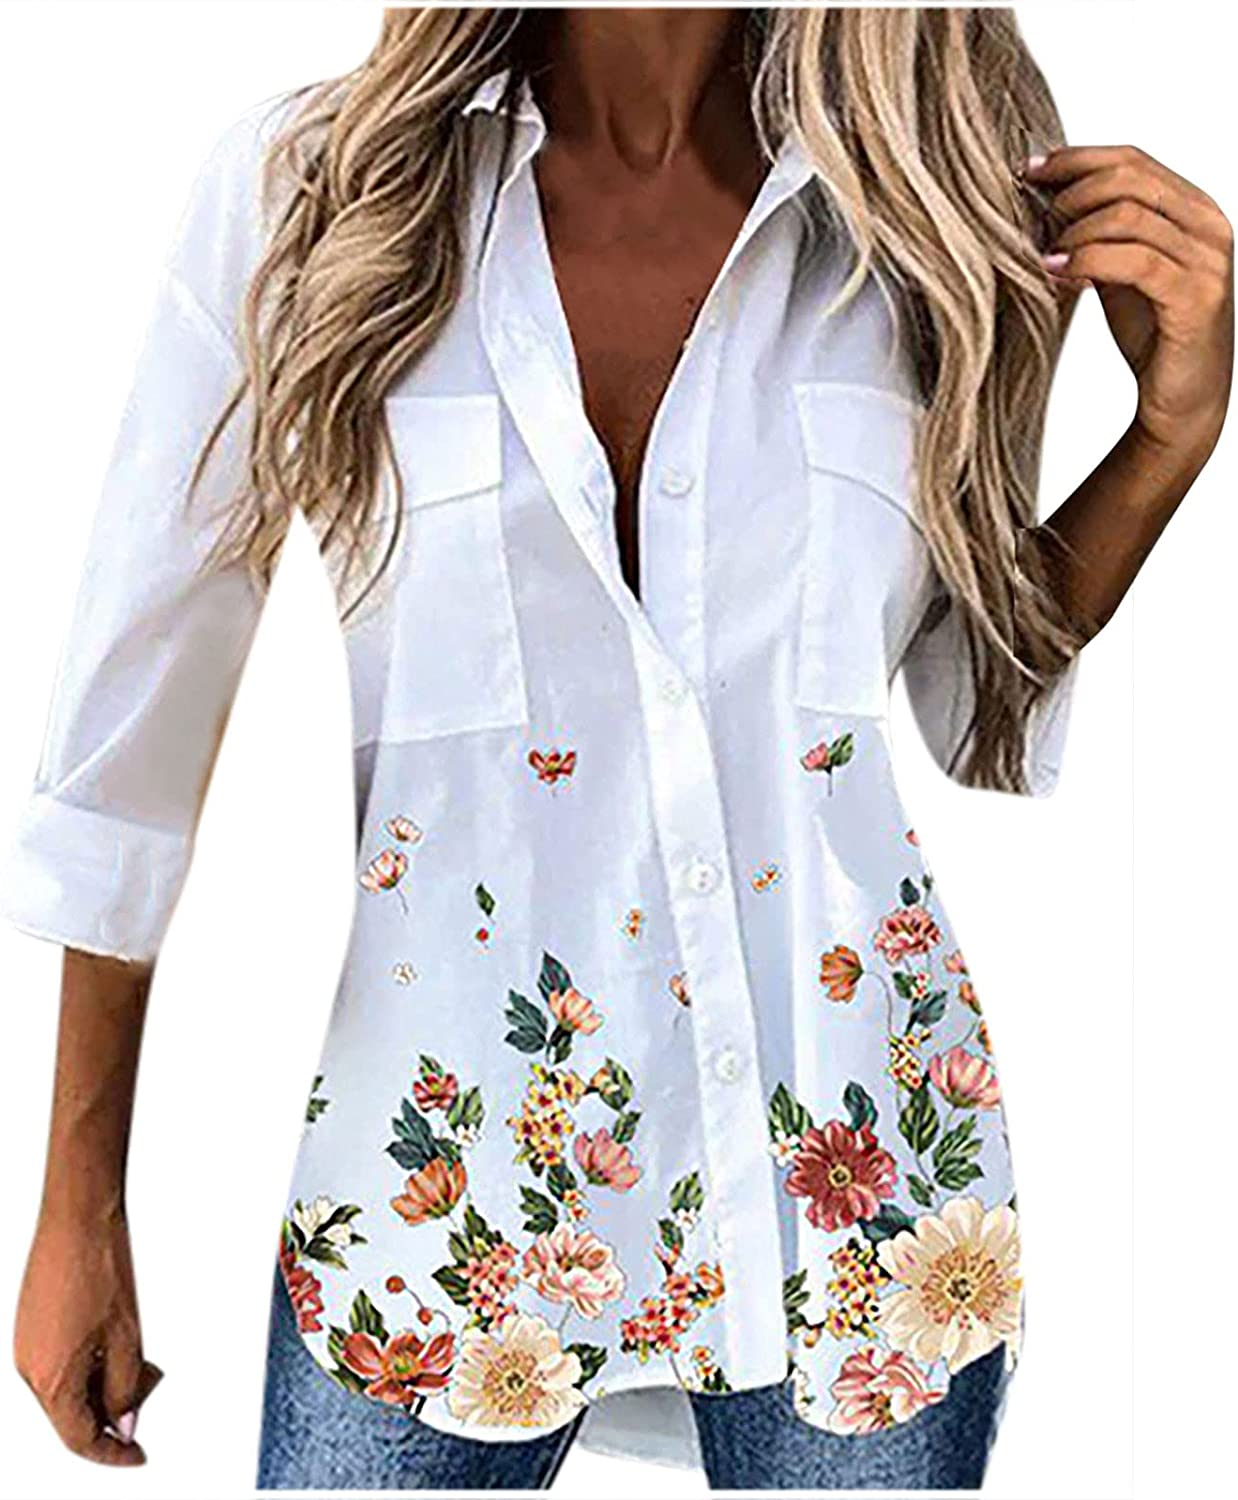 Tpingfe T-Shirt for Women Floral Print Tops Lapel Neck Vintage Causual Business Office Dress Shirt Adult Teen Blouse